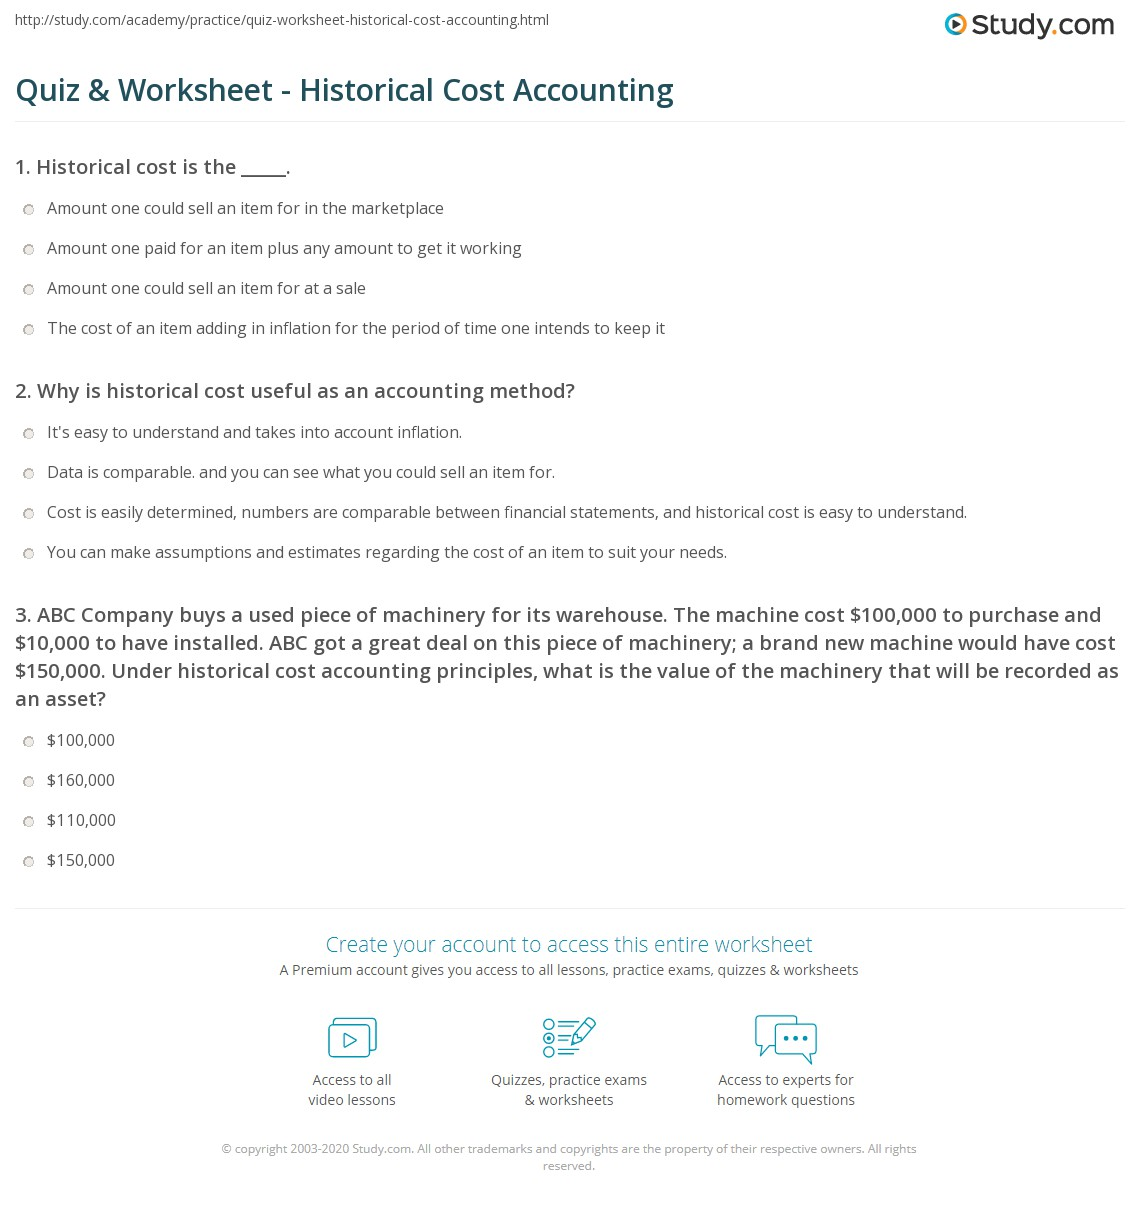 Cost Accounting Worksheet Frc